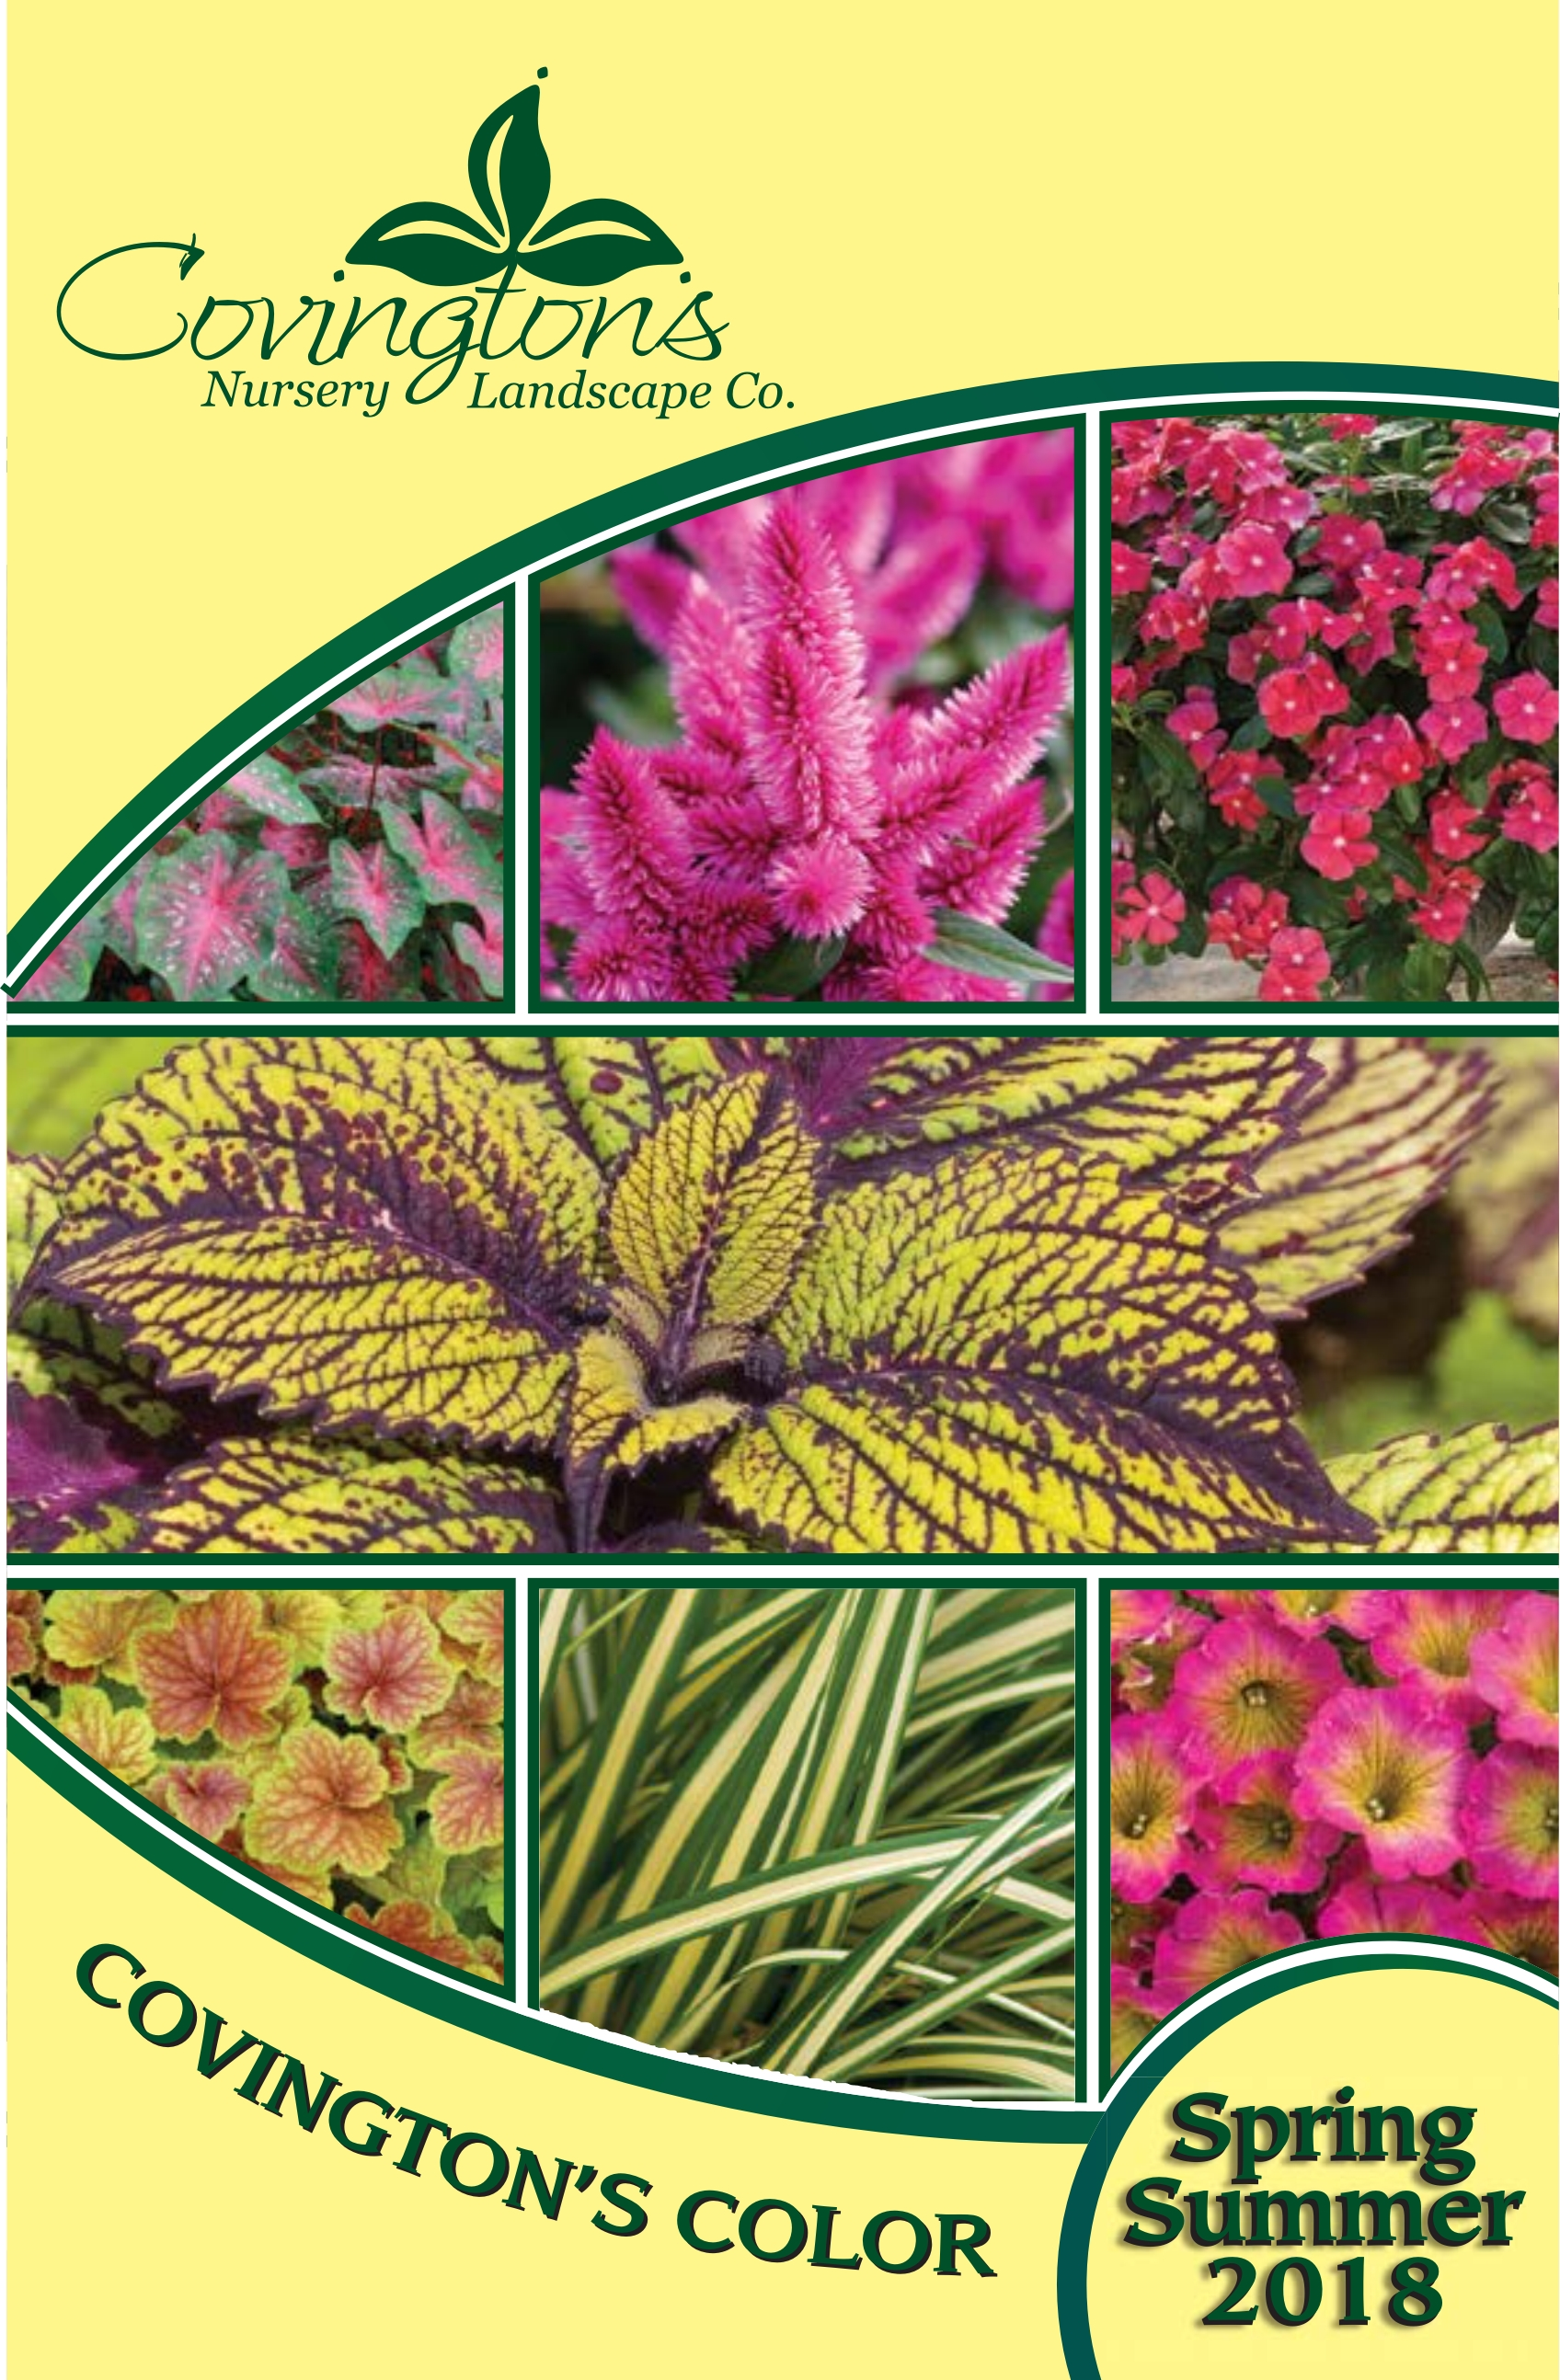 Gardening tips articles archives covingtons 2018 spring bedding plant guide nvjuhfo Choice Image